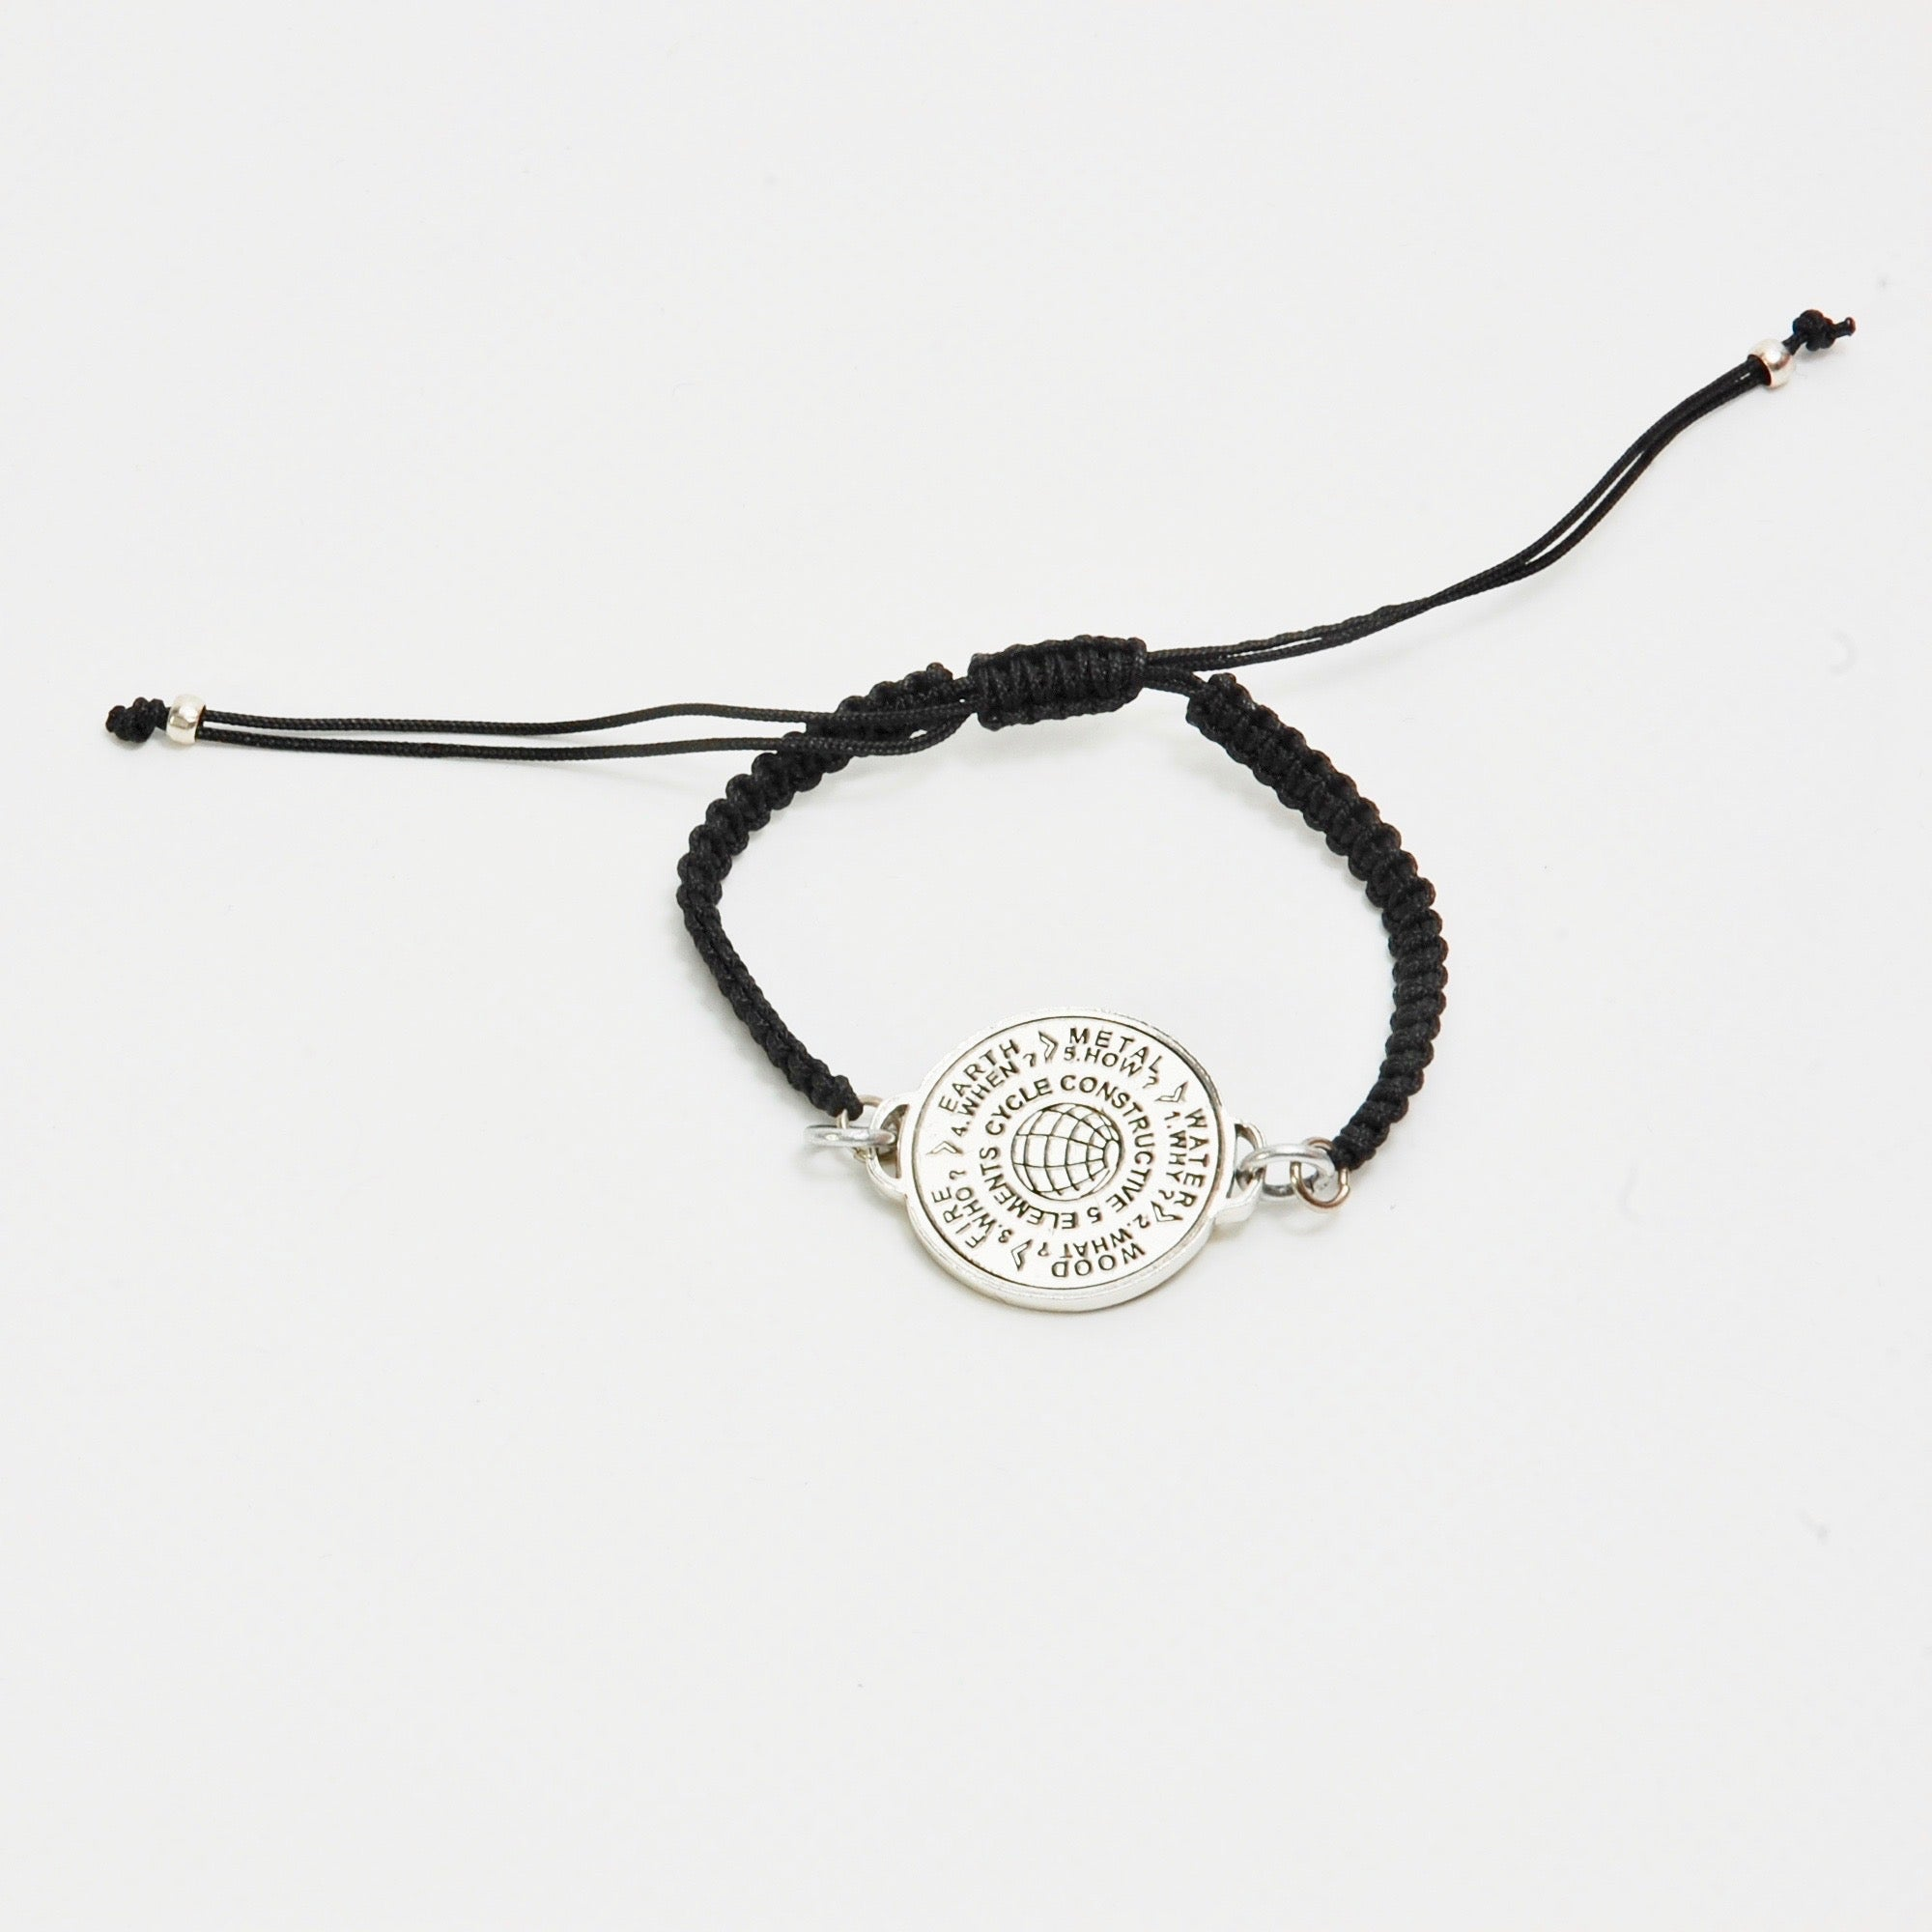 5 Elements Jewelry Bracelet macrame black cord color